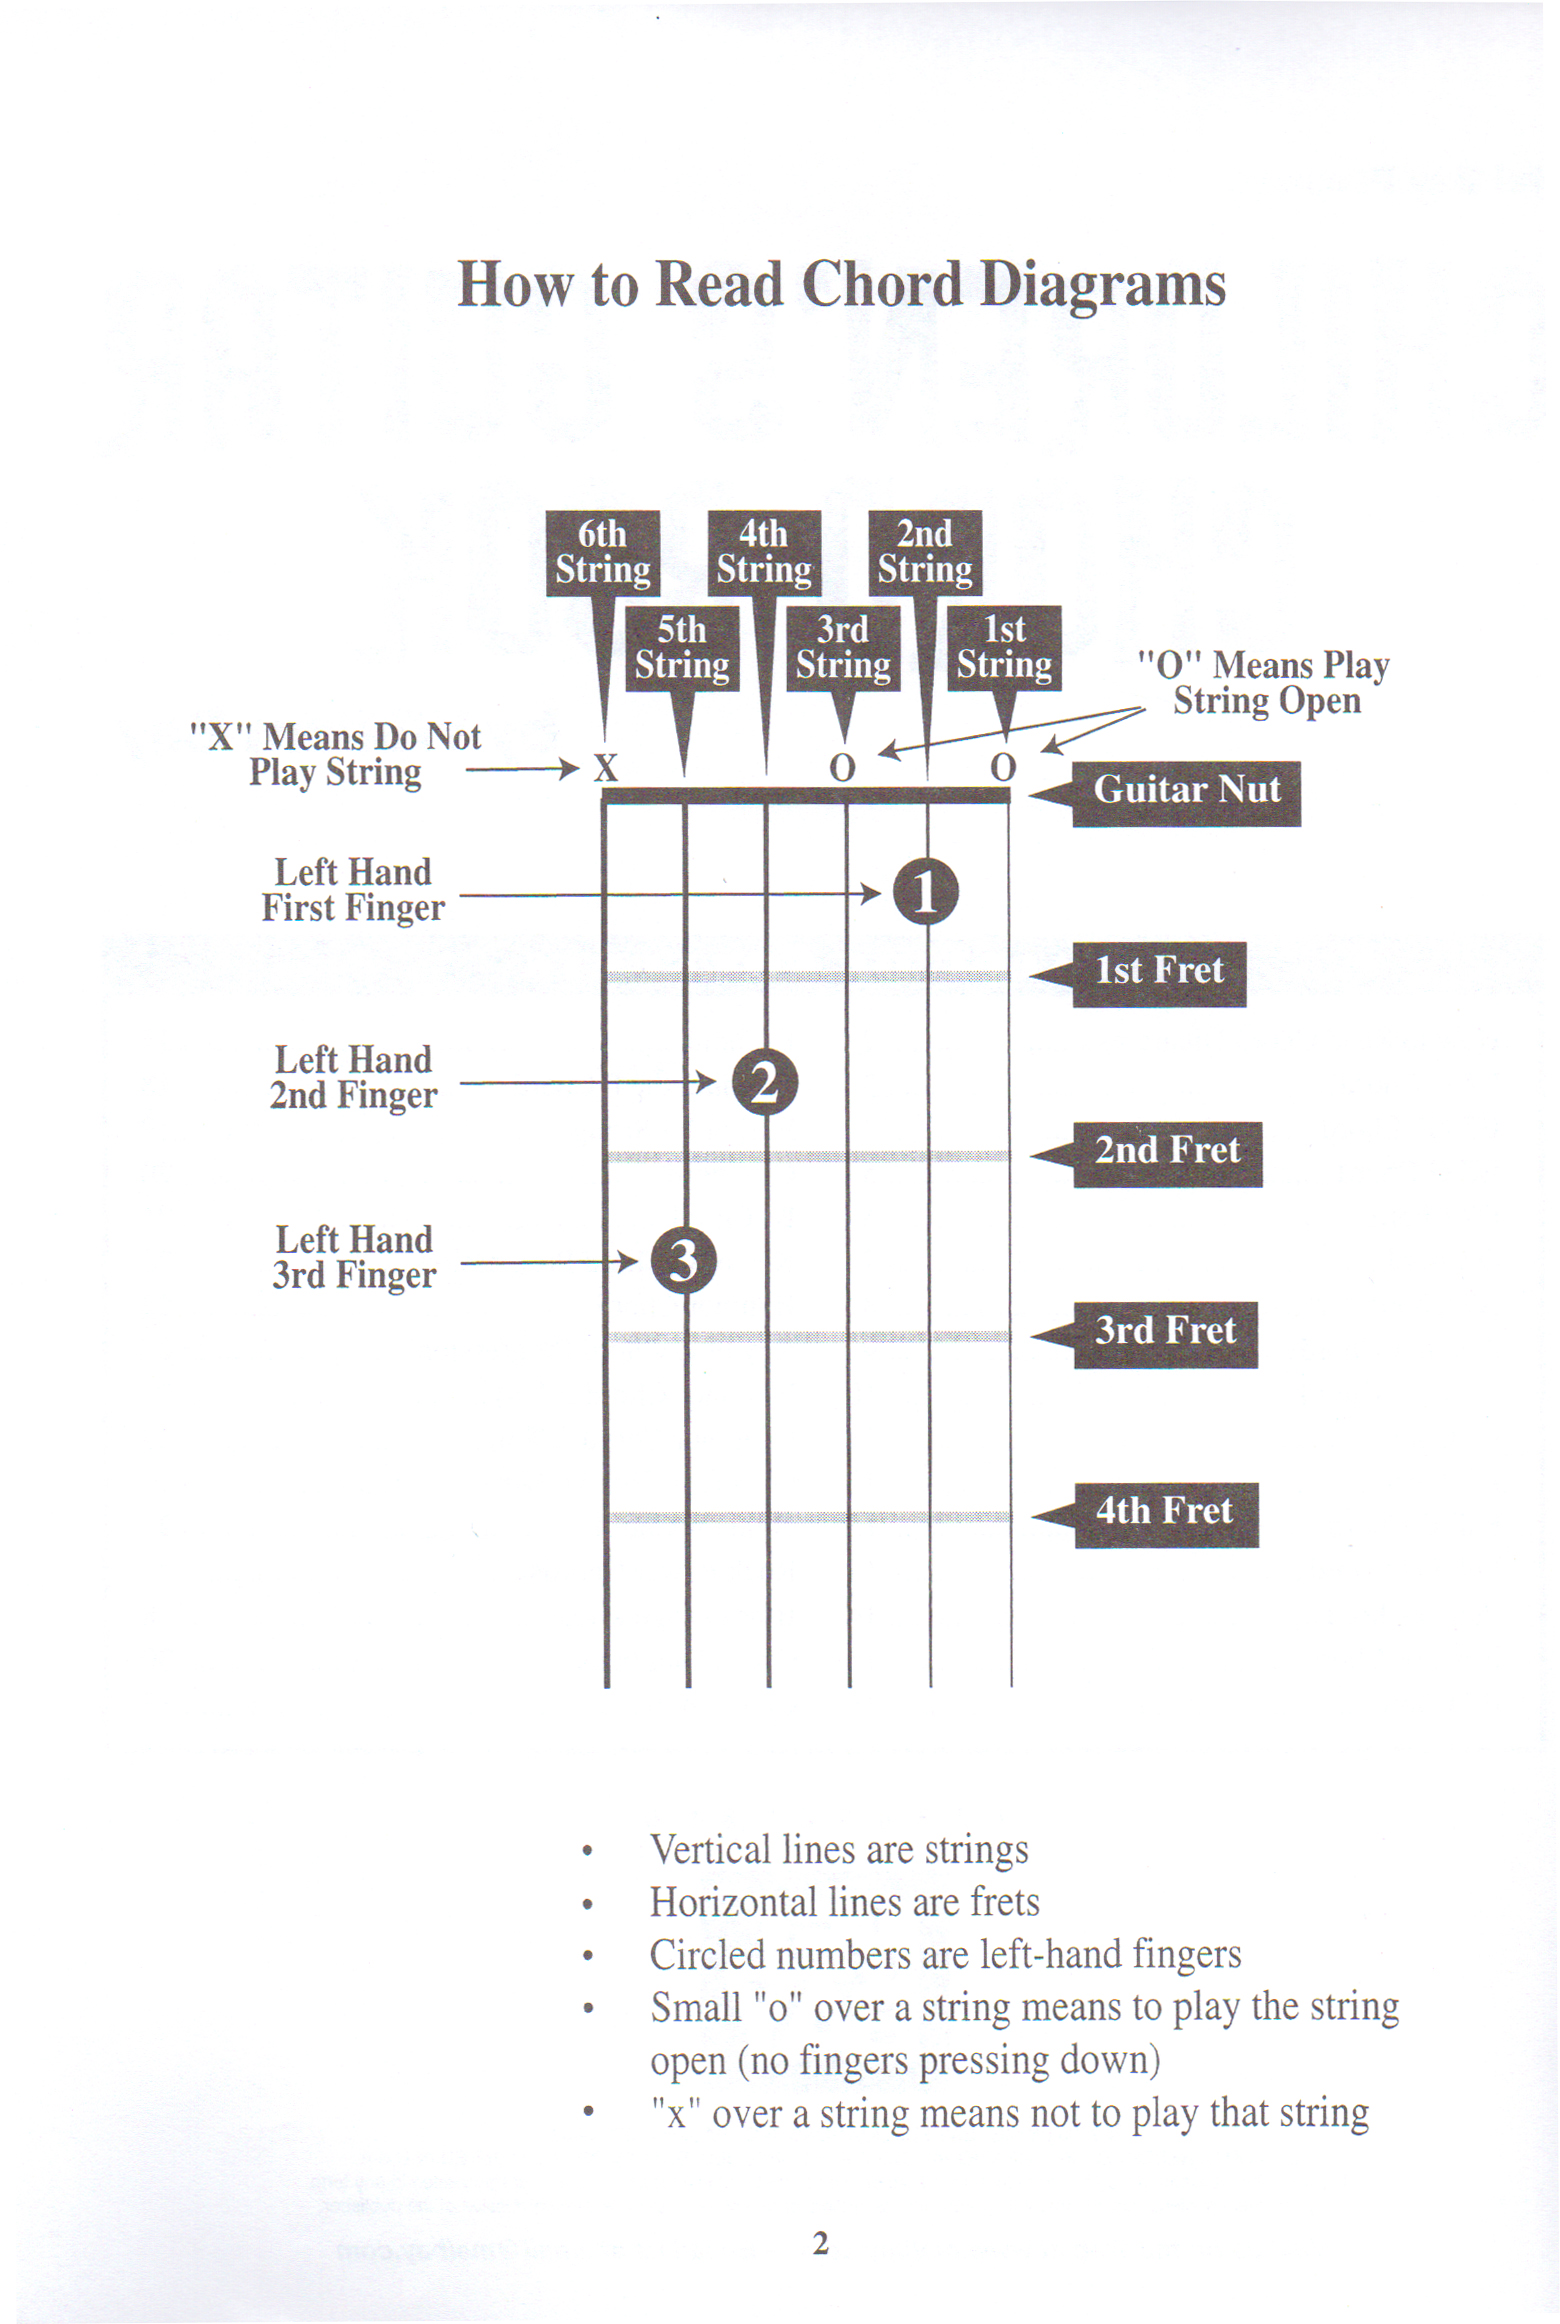 Guitar Club A7 Chord Diagram Lesson 2 Read Diagrams